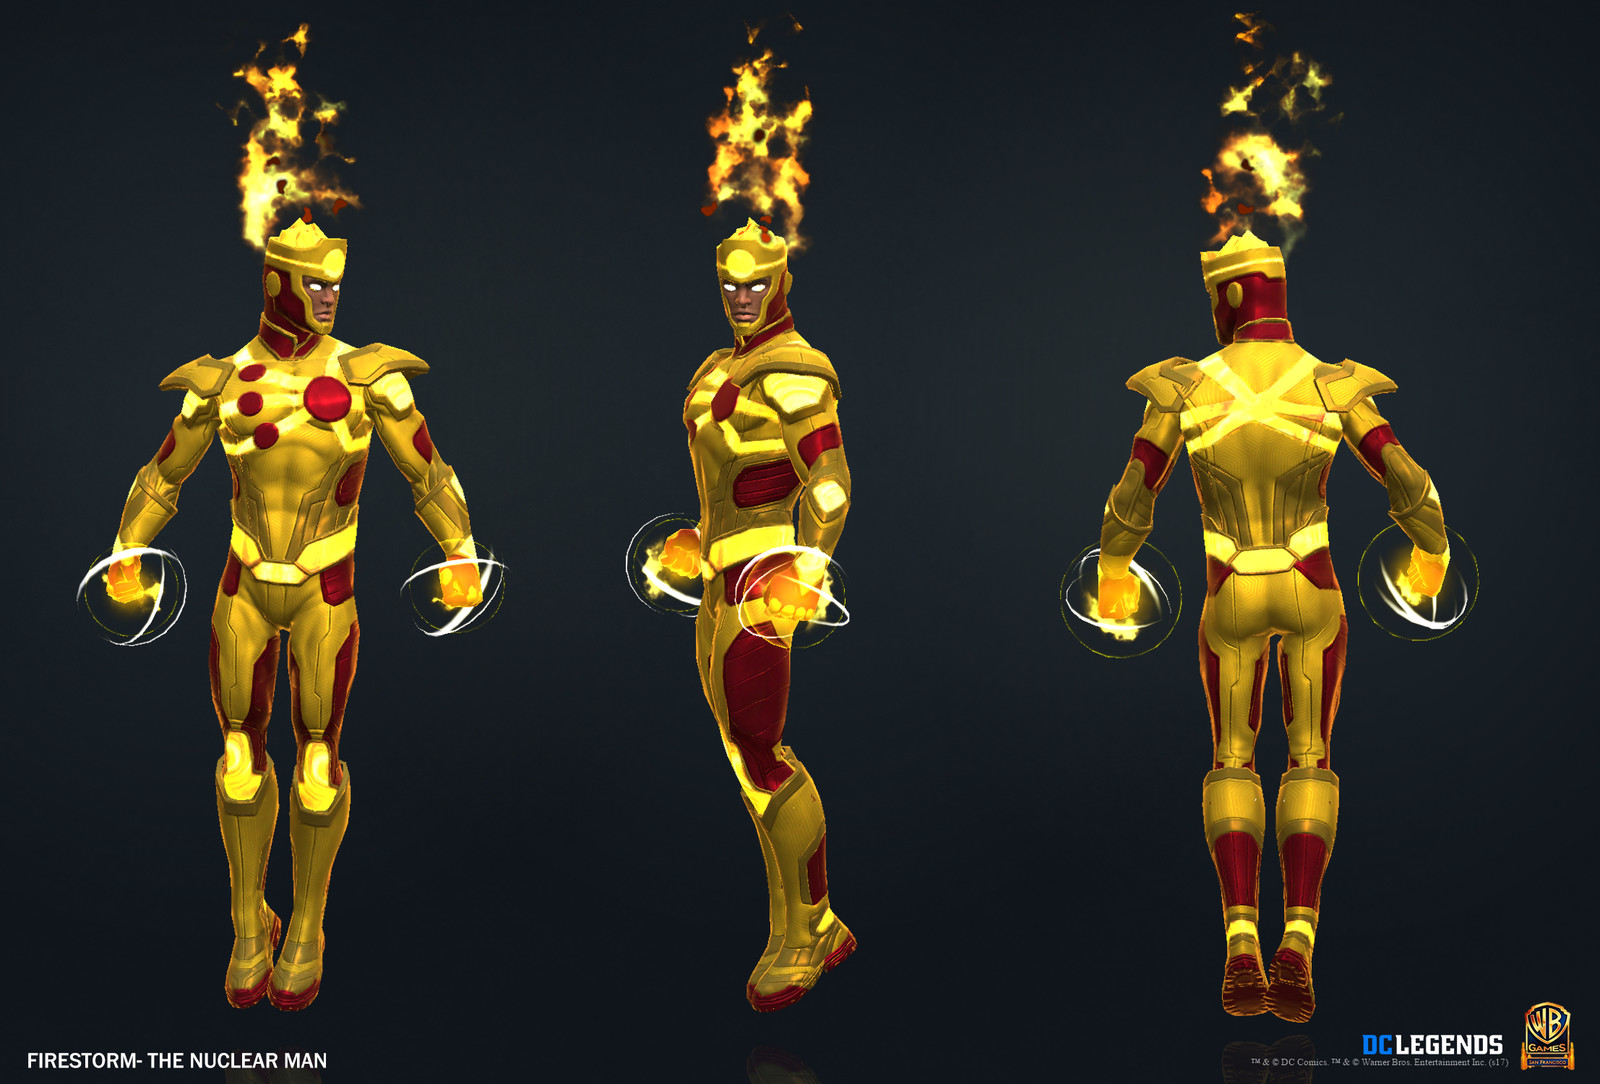 Firestorm Legendary. High Poly, Low Poly and Textures/Material work done by me. VFX created by Alex Mangulabnan.